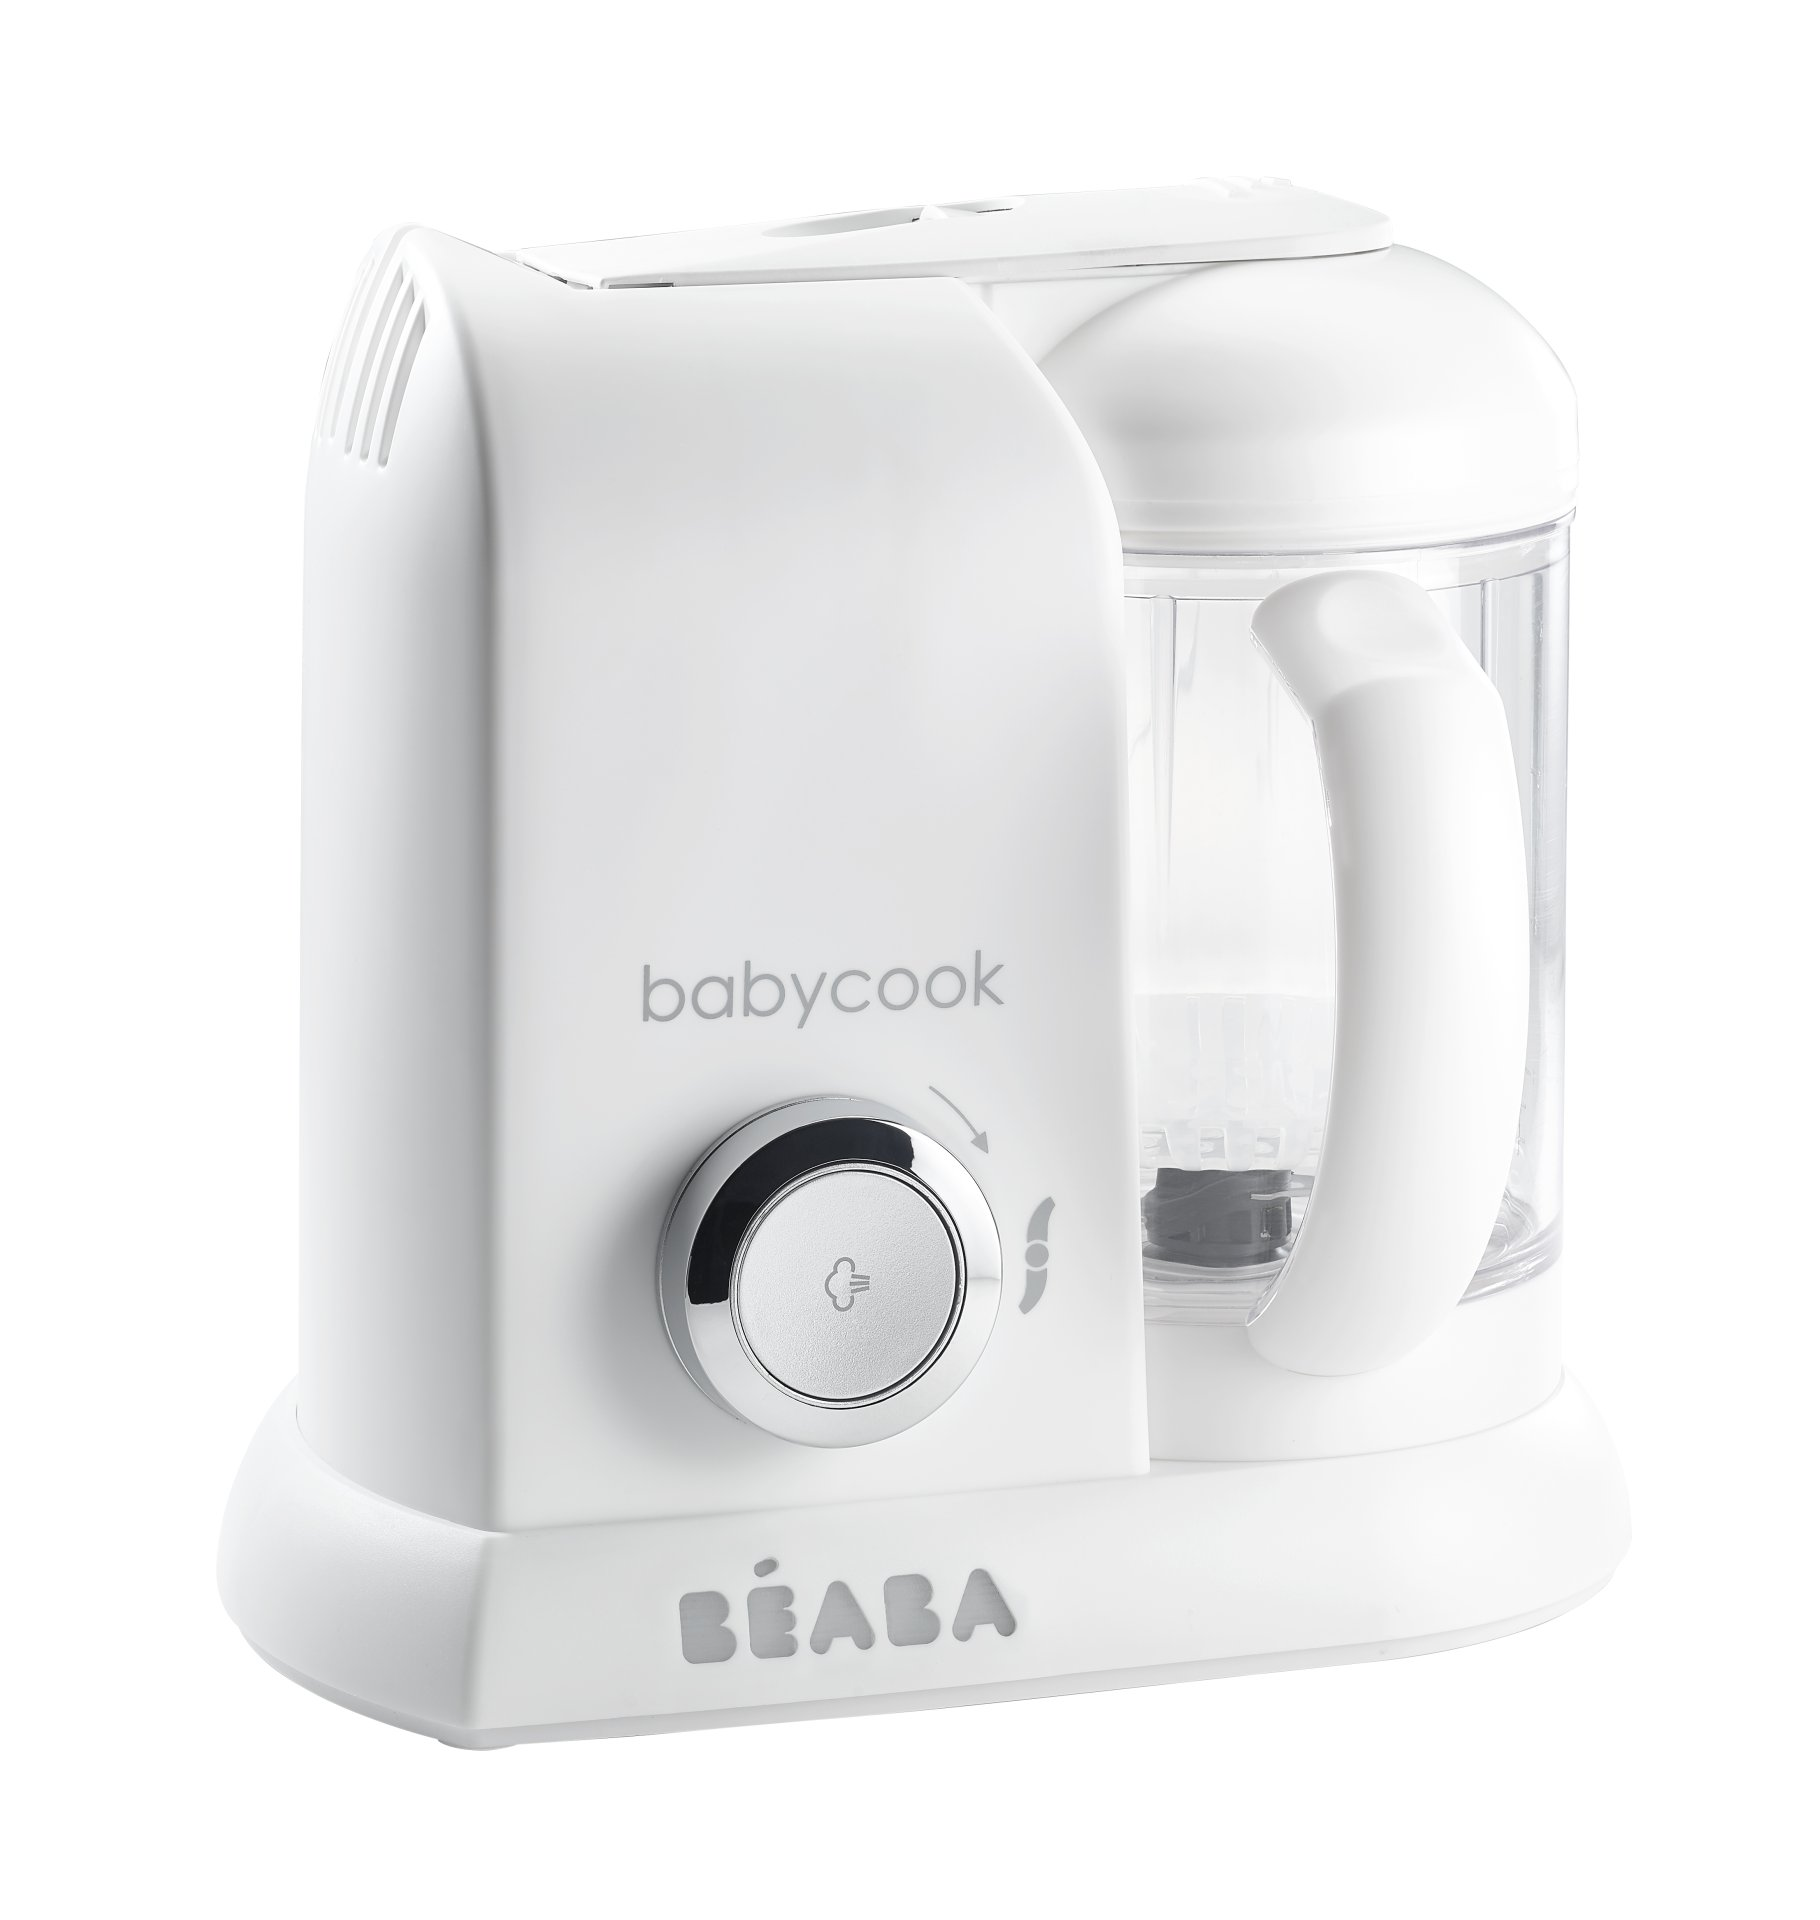 Beaba Babycook Neon Orders Are Welcome. Cups, Dishes & Utensils Baby